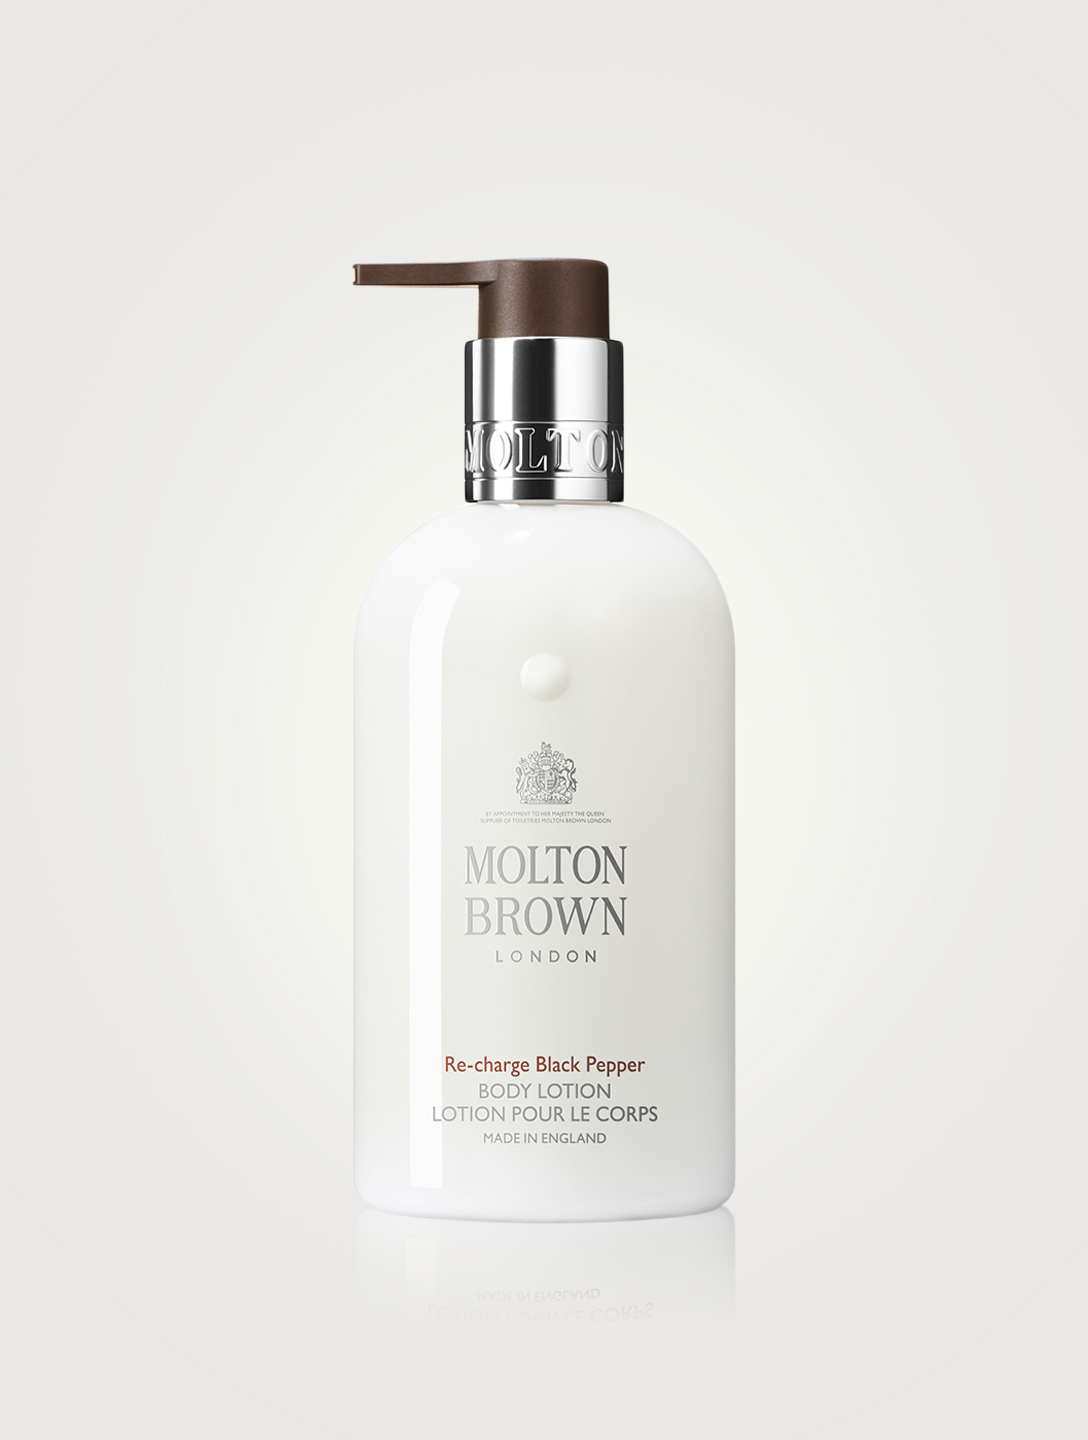 MOLTON BROWN Re-charge Black Pepper Body Lotion Beauty